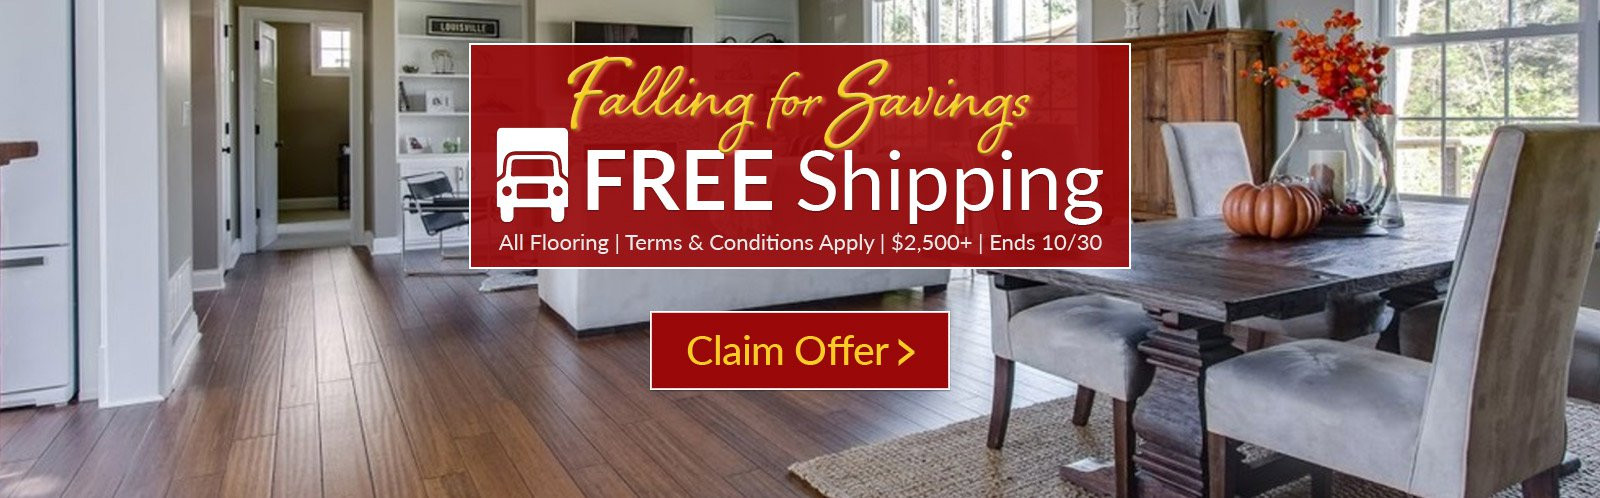 Hardwood Flooring Company Sandyford Of Green Building Construction Materials and Home Decor Cali Bamboo with Regard to Your Shopping Cart is Empty